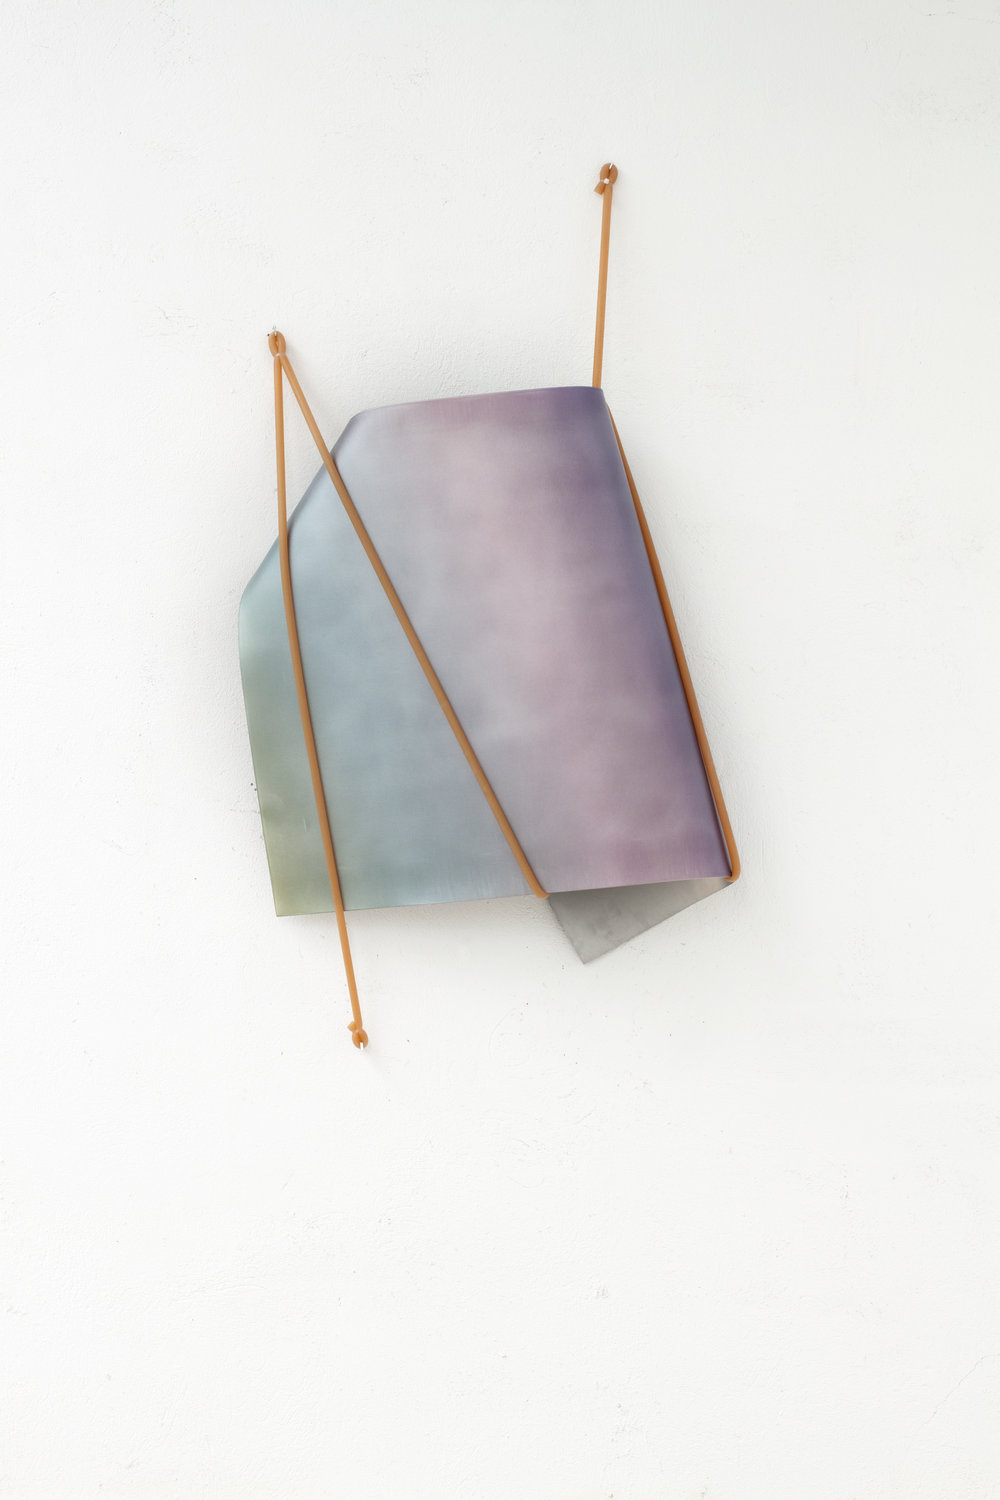 Inma Femenía, In Tension no.07, 2017 UV print, manipulated aluminum and natural rubber 123 x 70 x 18 cm - 48 1/2 x 27 1/2 x 7 inches